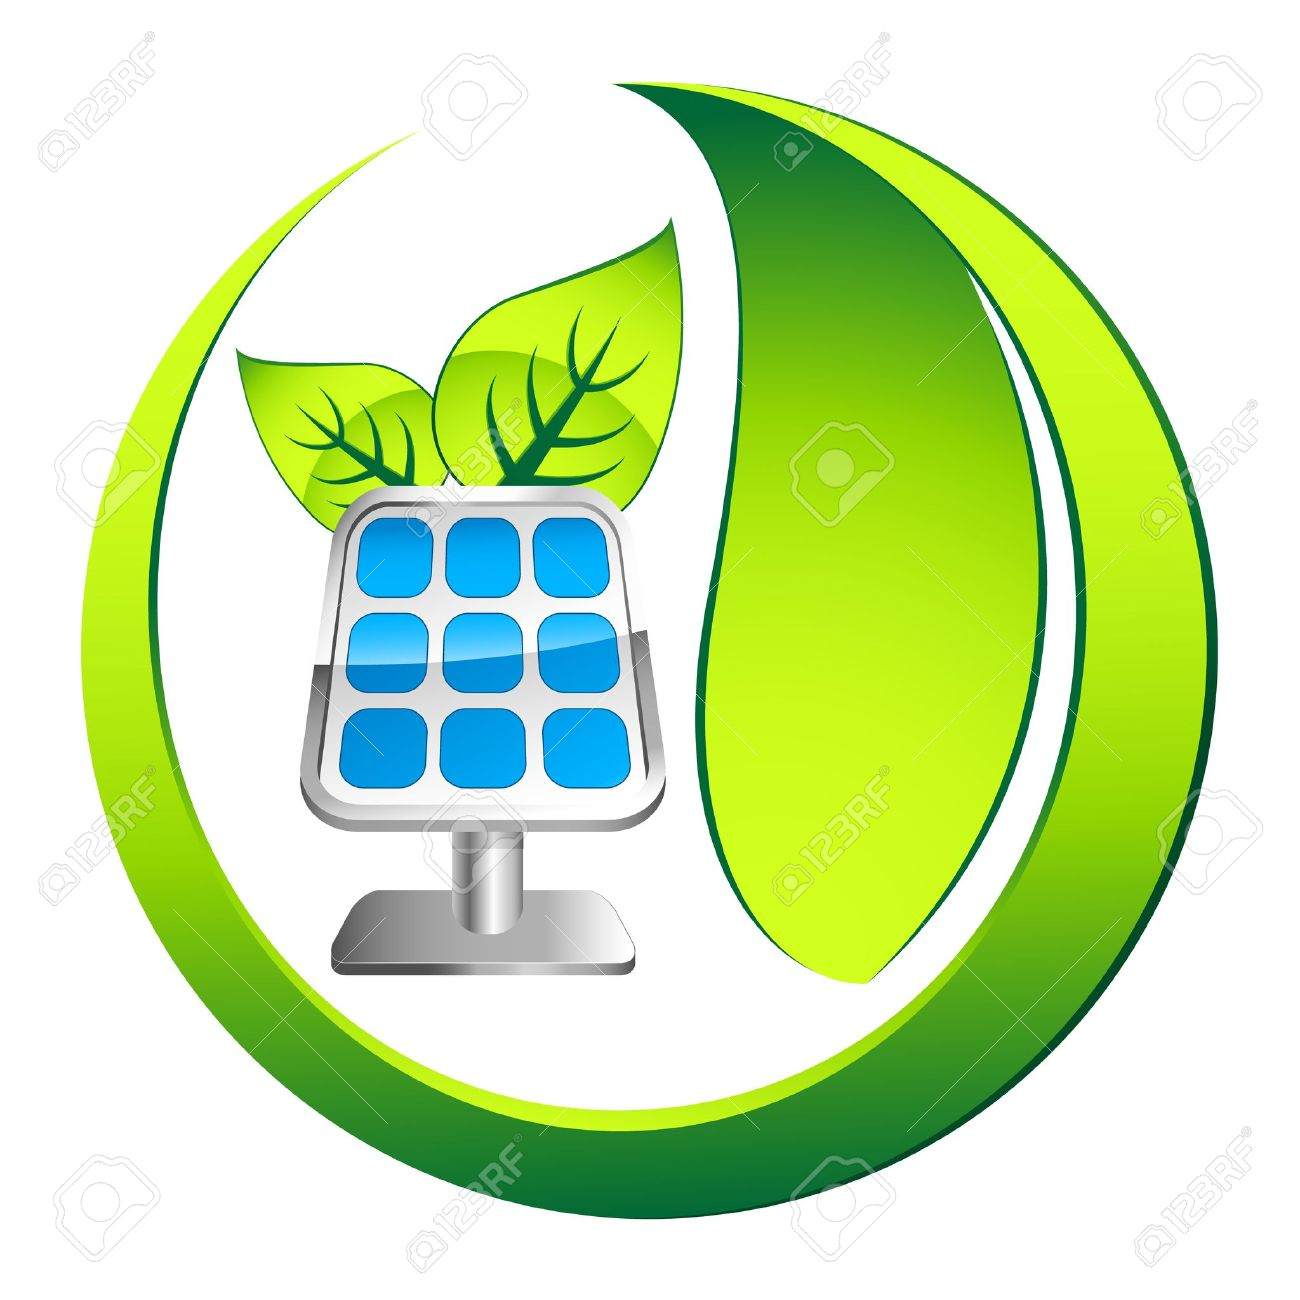 solar panel icon with leafs - 21950614